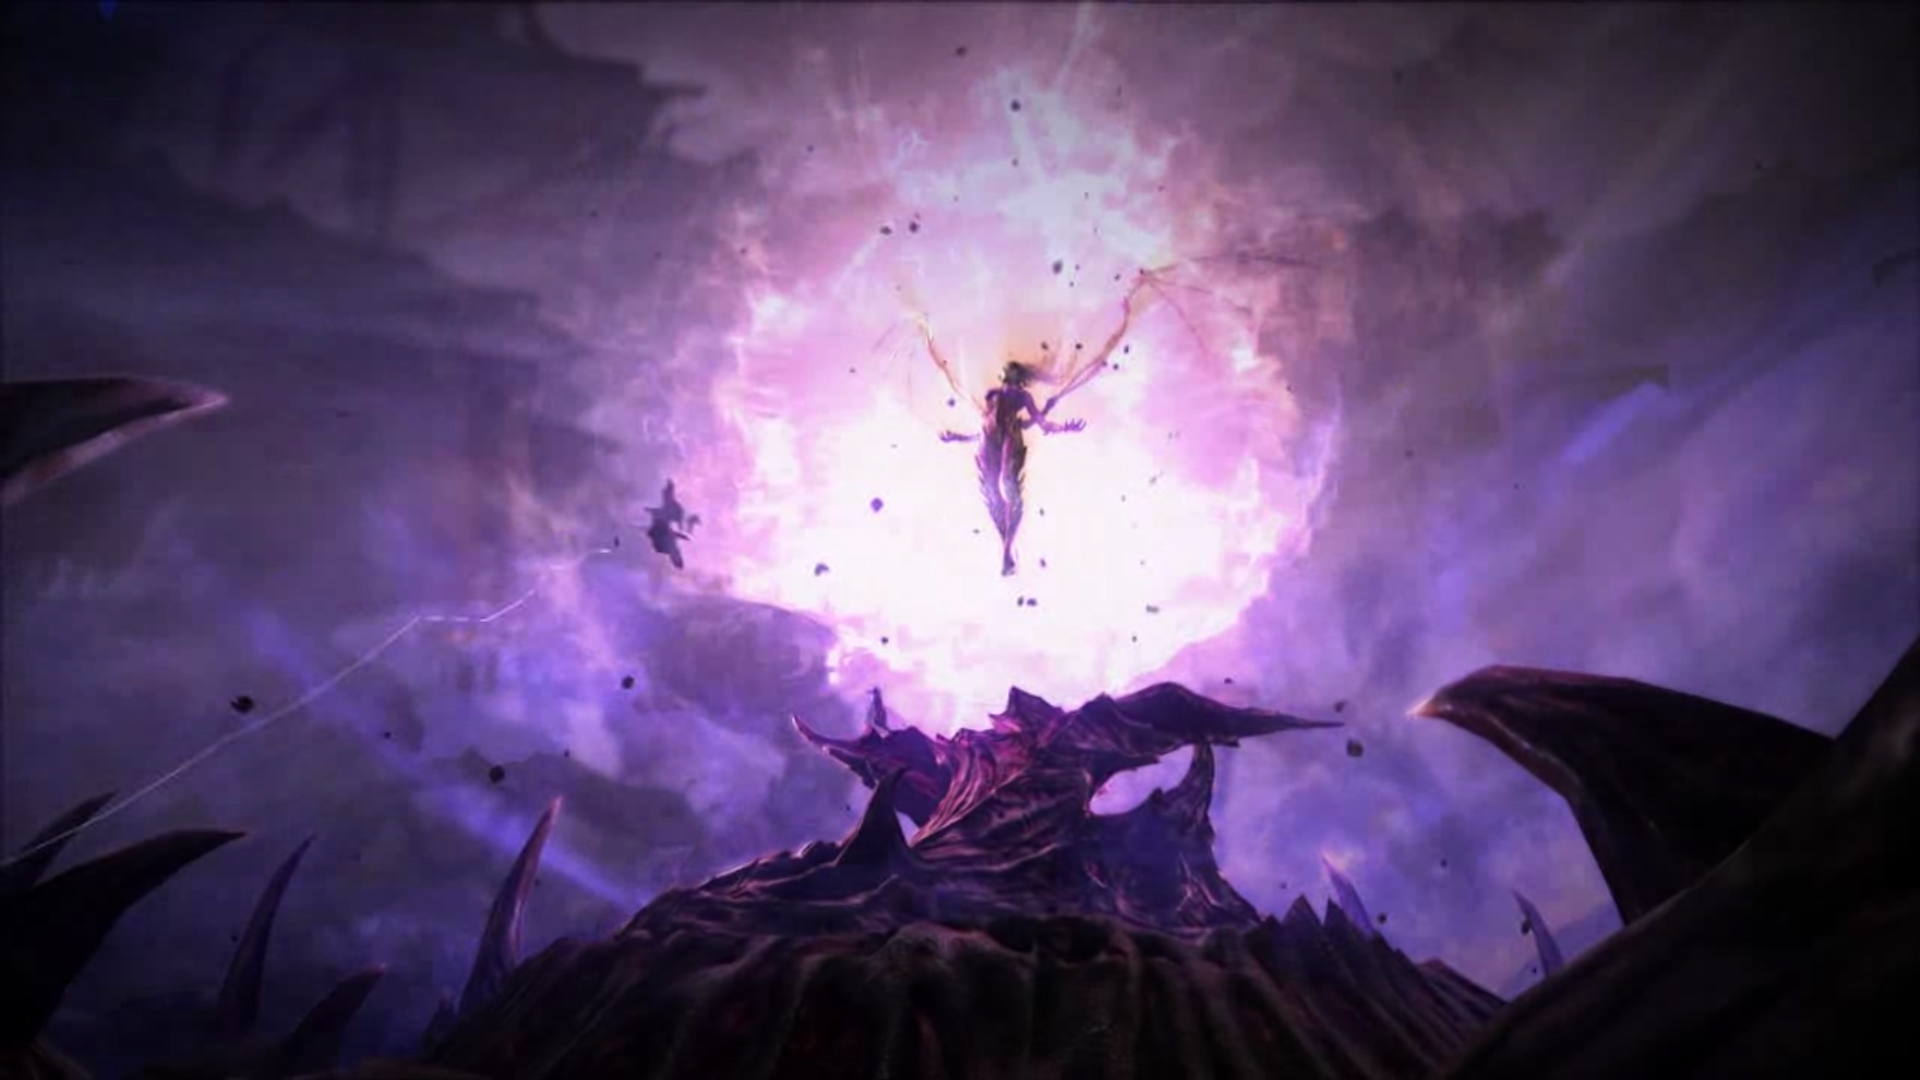 World Of Warcraft Wallpapers Hd Blizzplanet The Crucible Starcraft Ii Heart Of The